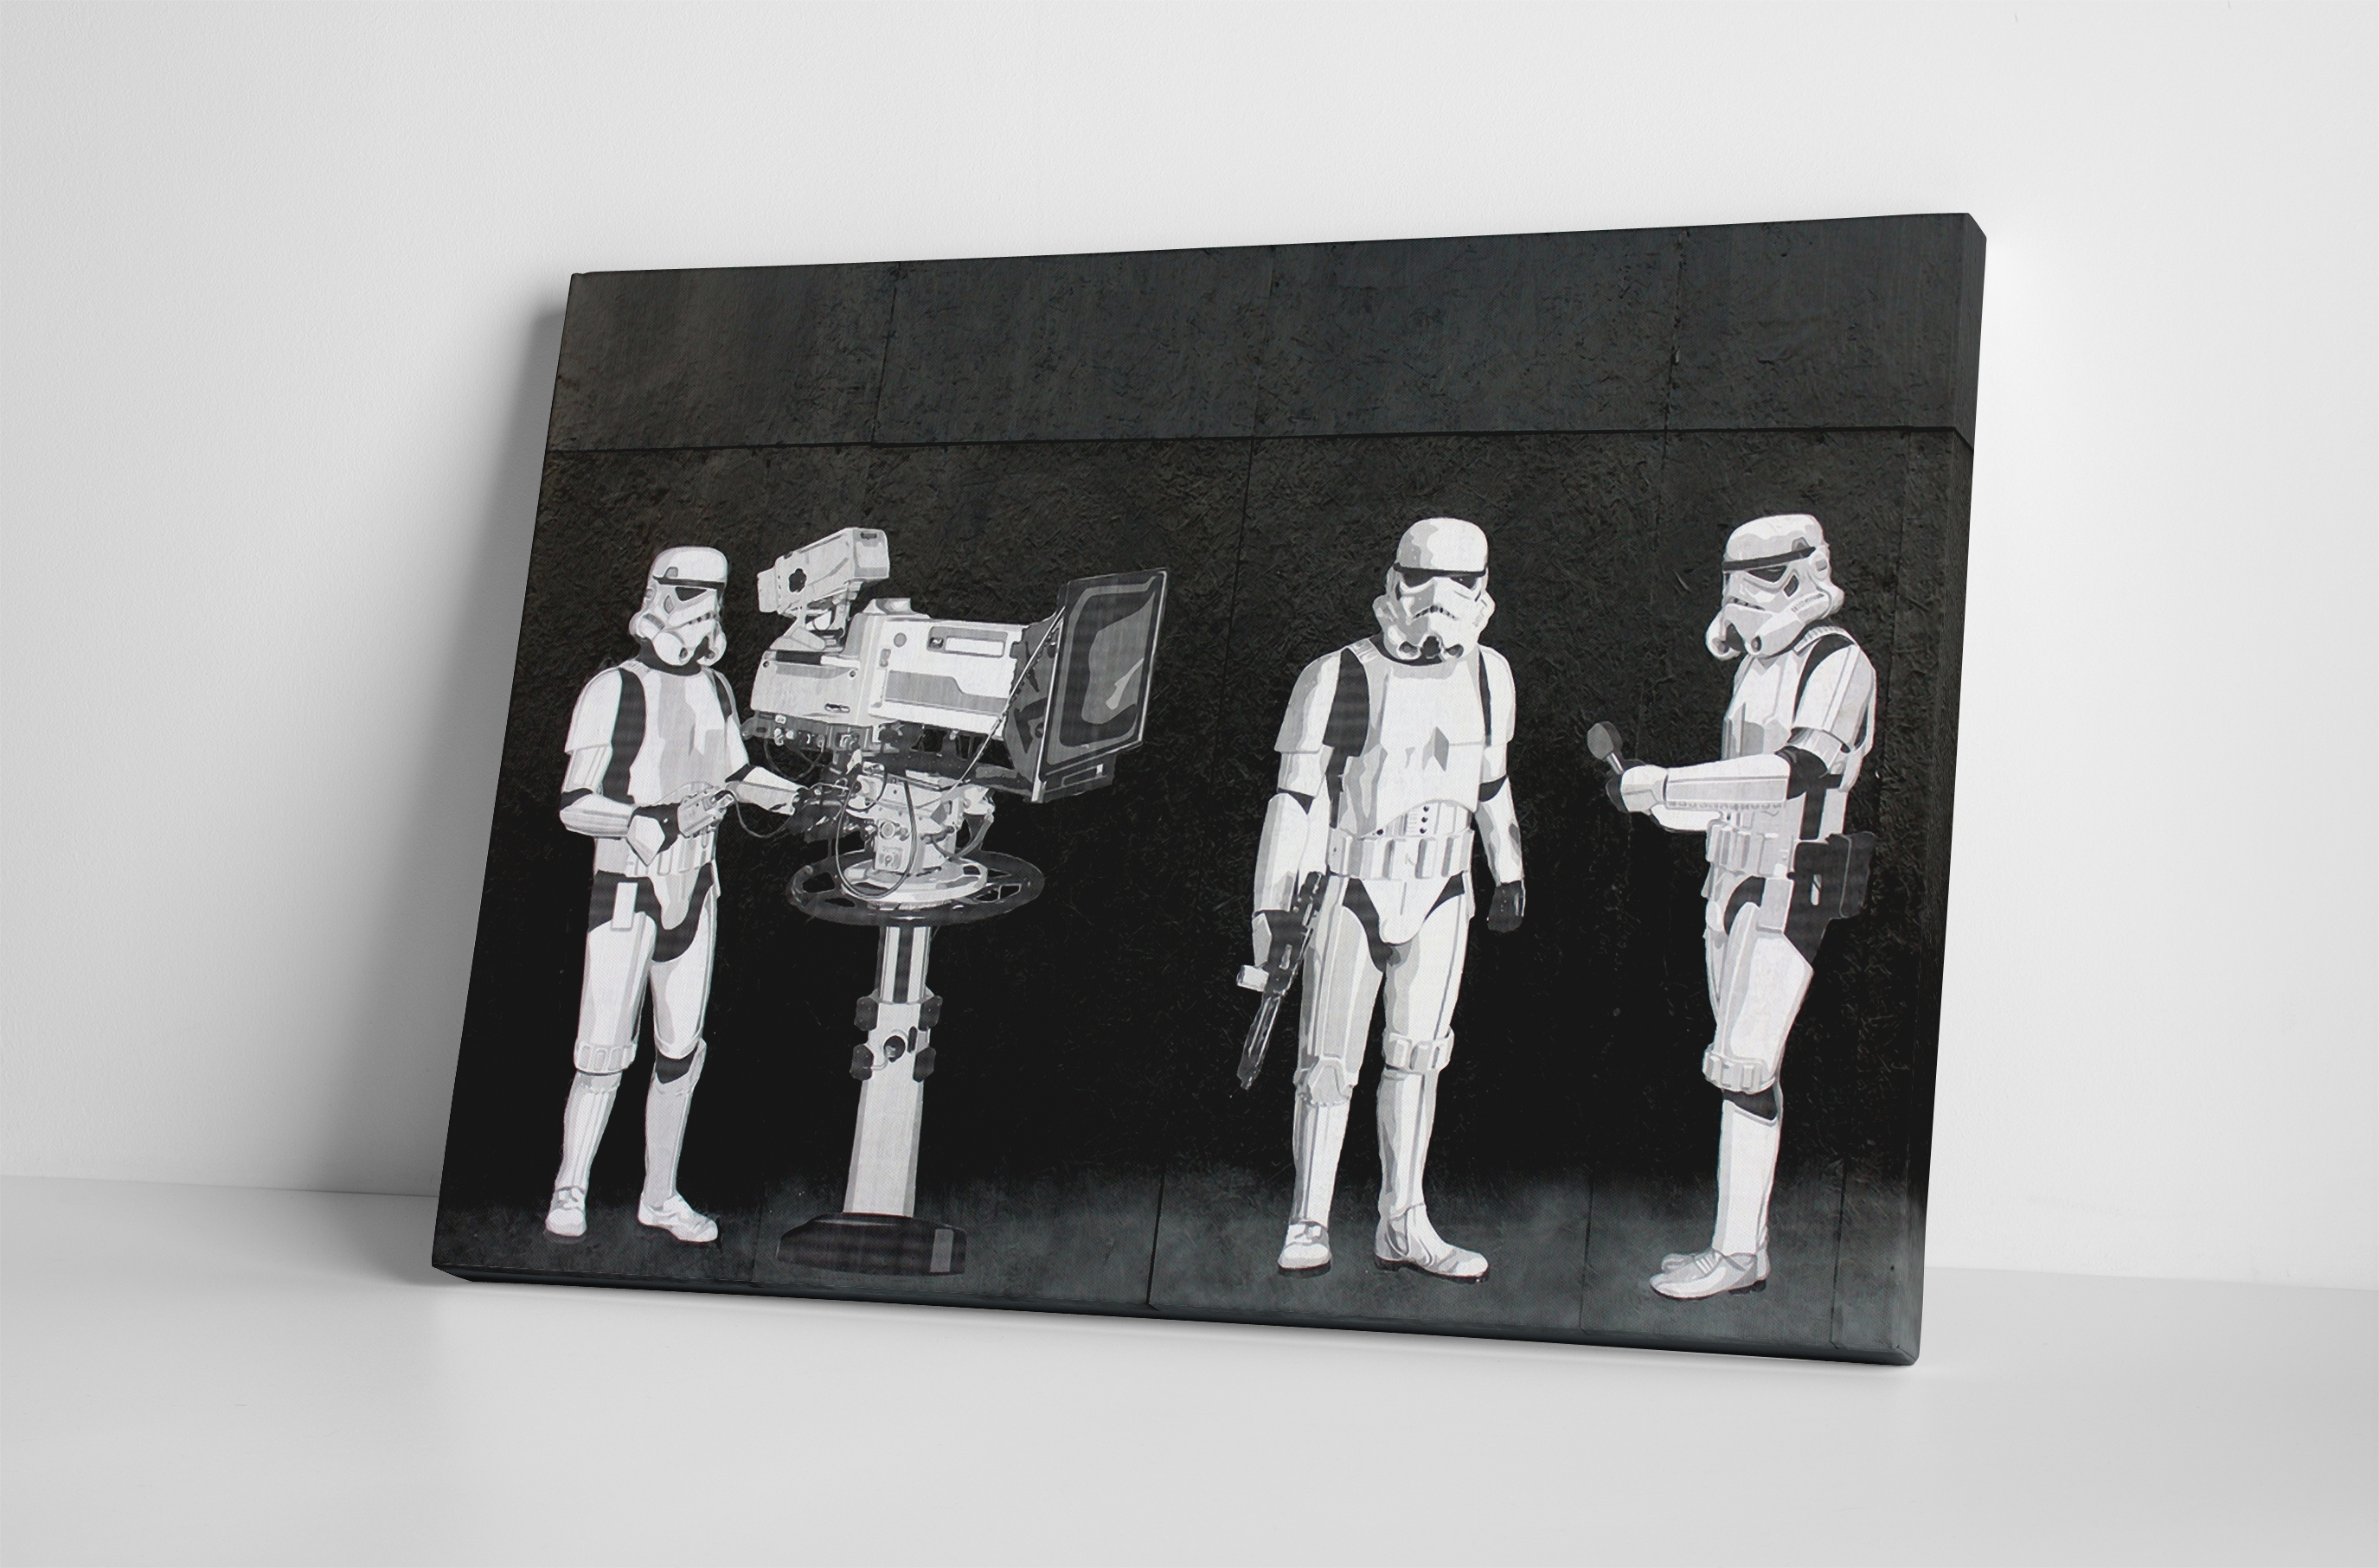 2018 Banksy Stormtroopers Filming Oscars Canvas Wall Art Throughout Banksy Wall Art Canvas (View 1 of 15)